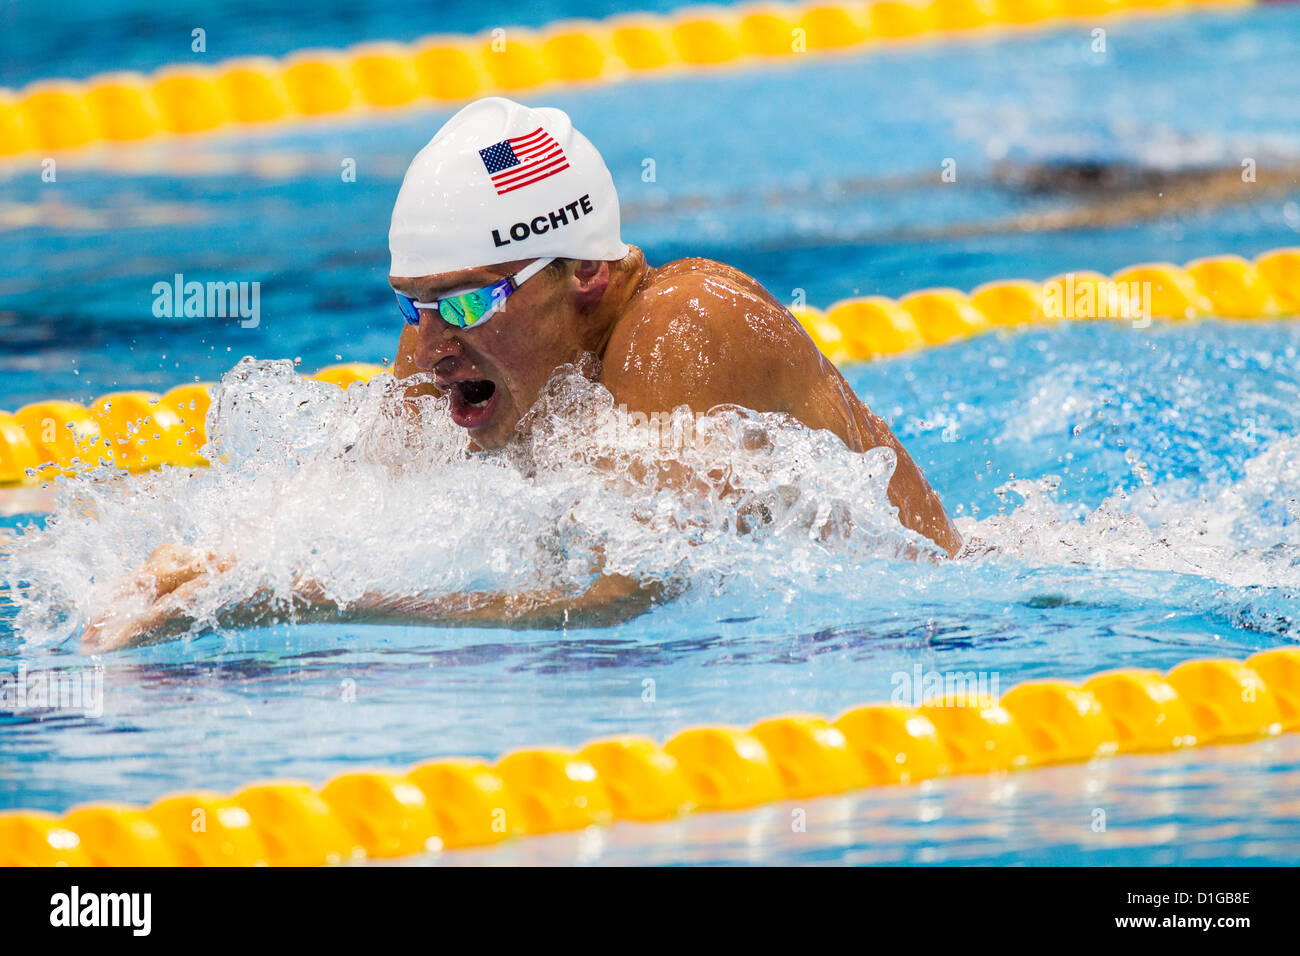 Ryan Lochte (USA) competing in the breaststroke leg of the Men's 400m Individual Medley Heat at the 2012 Olympic - Stock Image